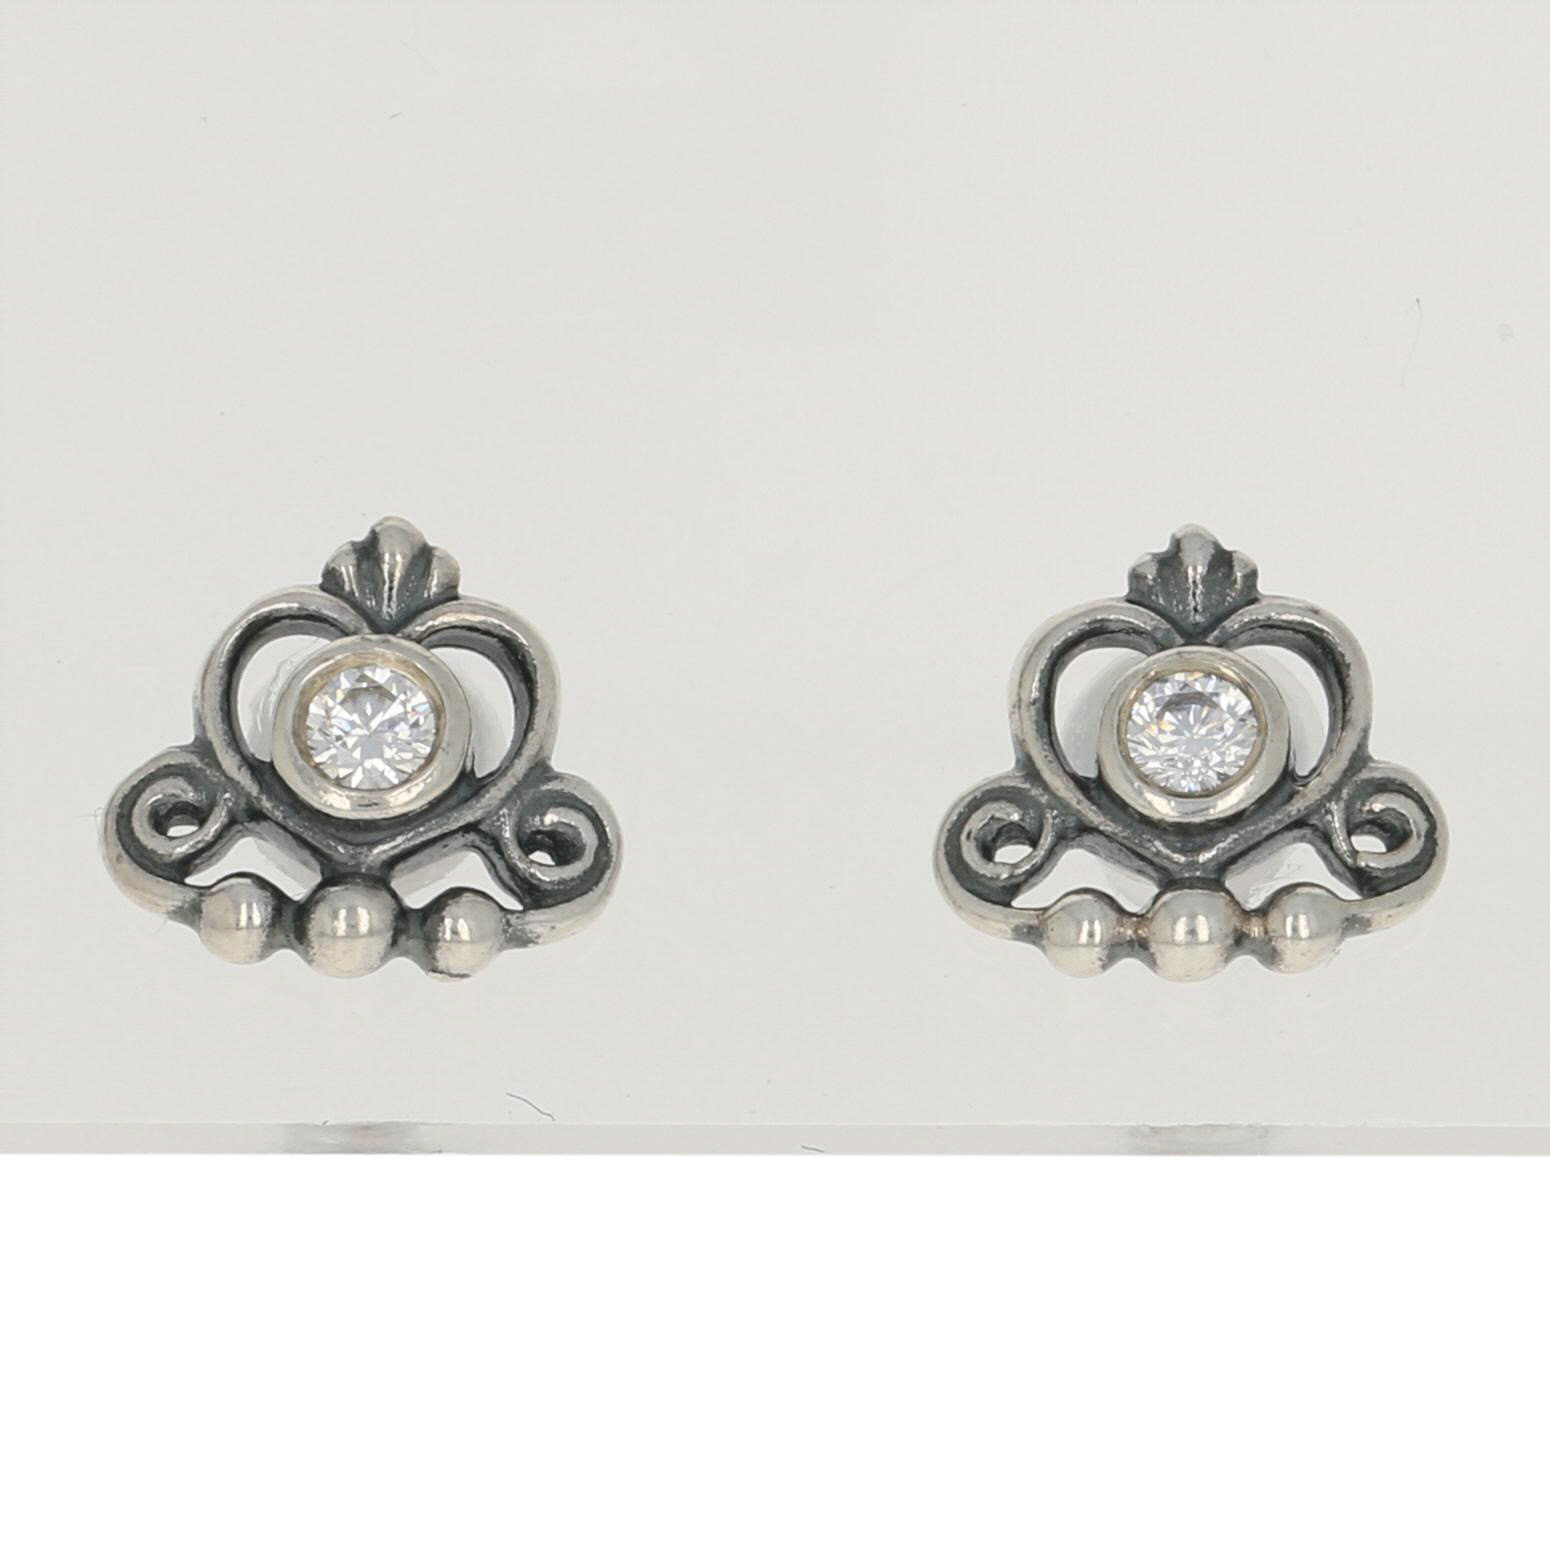 98d4000e82bf4 Details about NEW Authentic Pandora My Princess Tiara Stud Earrings -  Sterling Clear 290540CZ